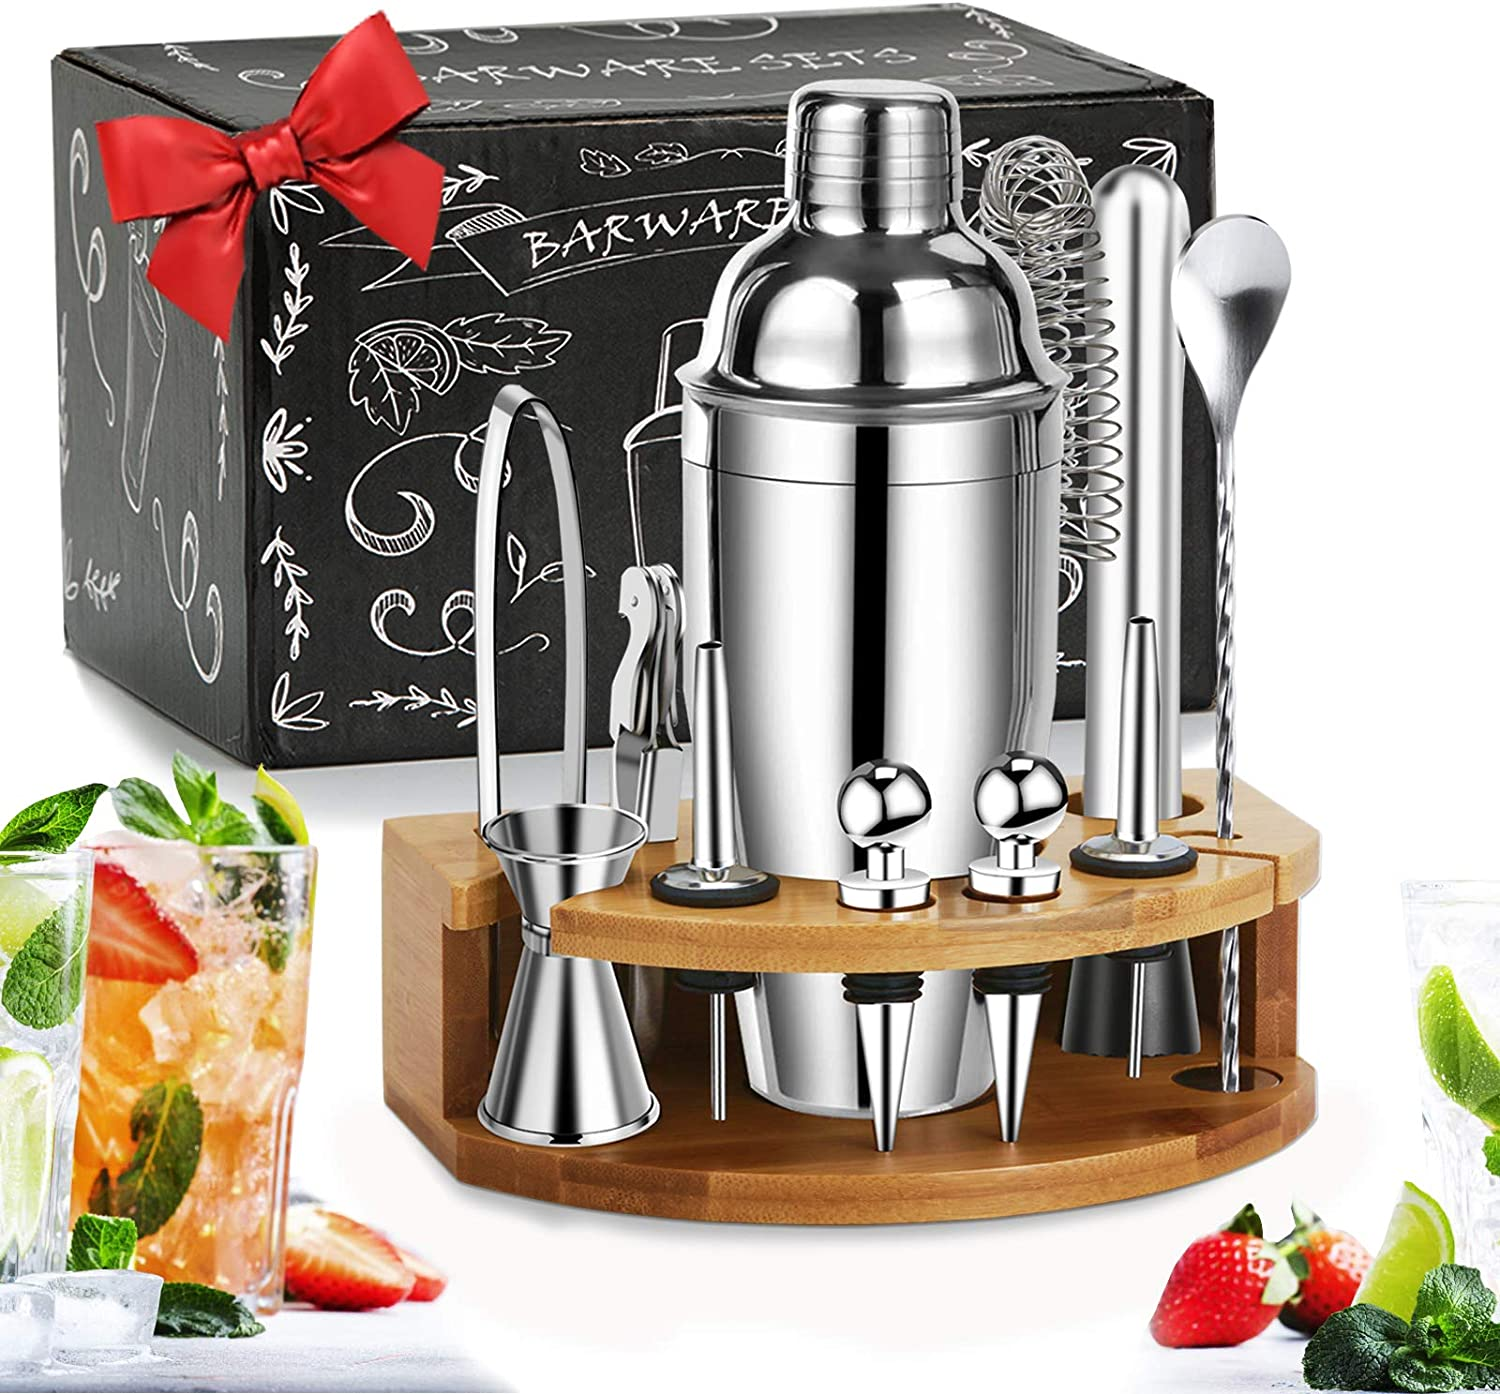 BestGK Bartender Kit Cocktail Shaker Set, Perfect Home Bartending Kit with Stylish Stand, 25oz Stainless Steel Martini Shaker with Cocktail Recipes Booklet